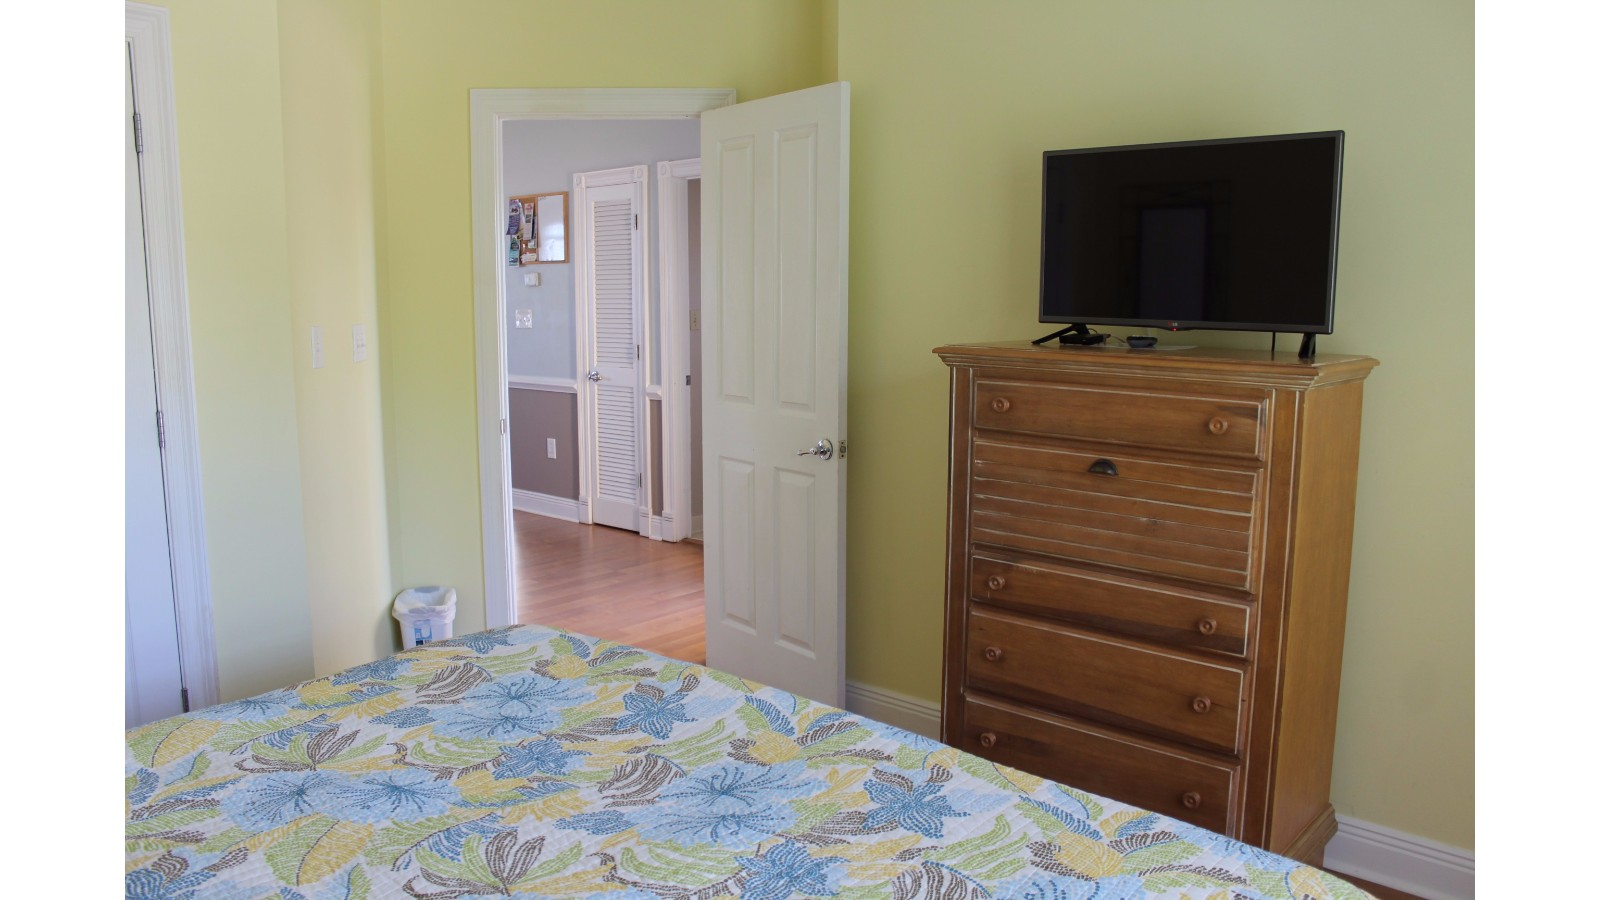 Yellow BedRoom, King Mattress, Main Floor, Bathroom Attached, TV and Closet. Facing Road and Nature Preserve